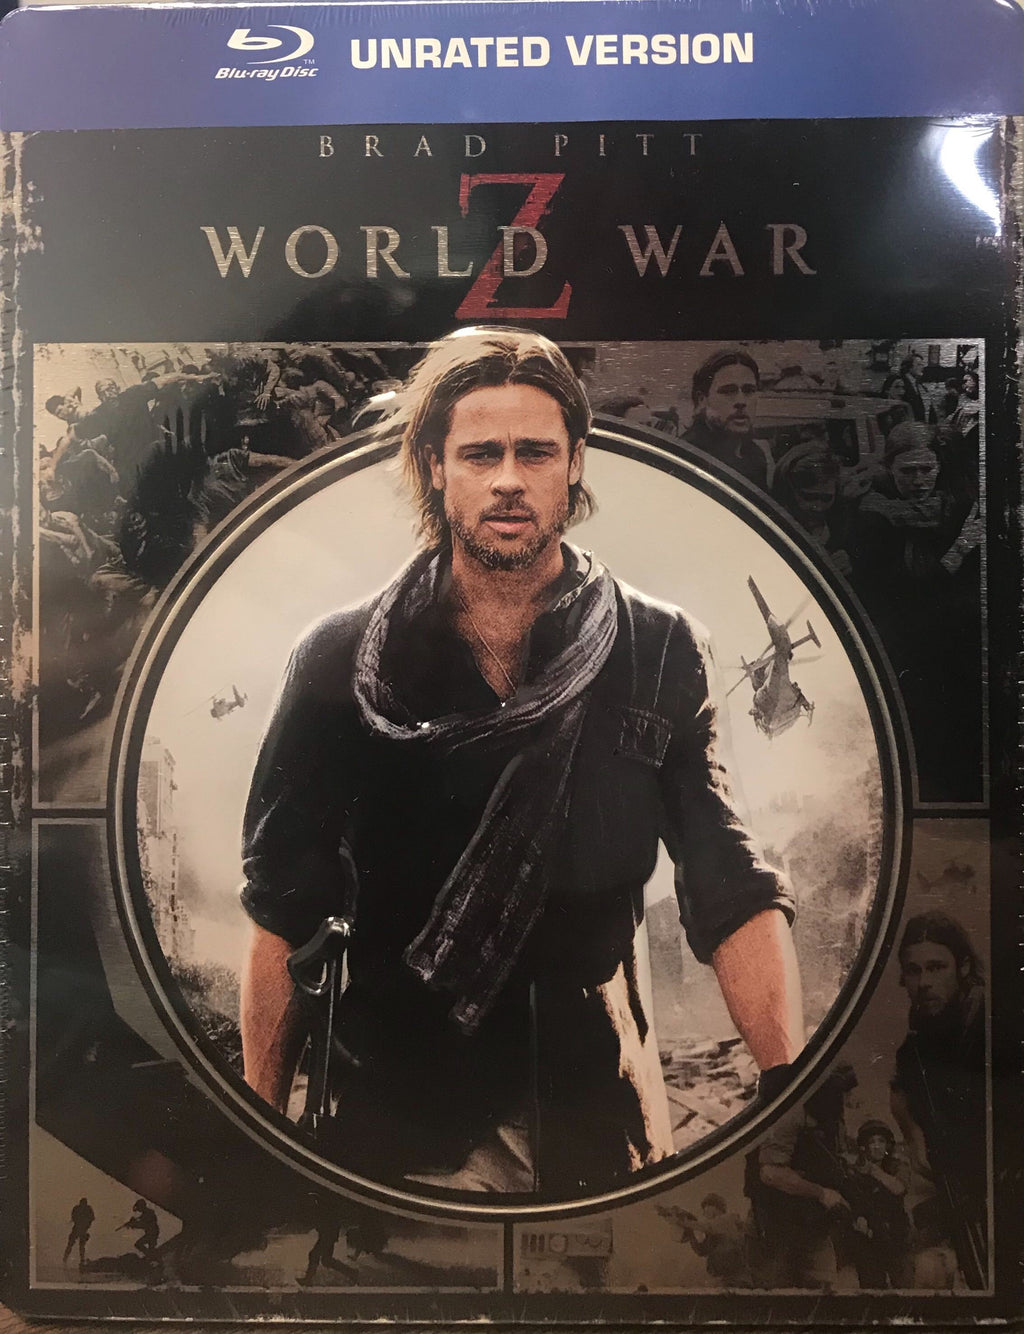 World War Z (Unrated) Blu-ray Embossed Metalpak Steelbook (DENTED - MINOR)